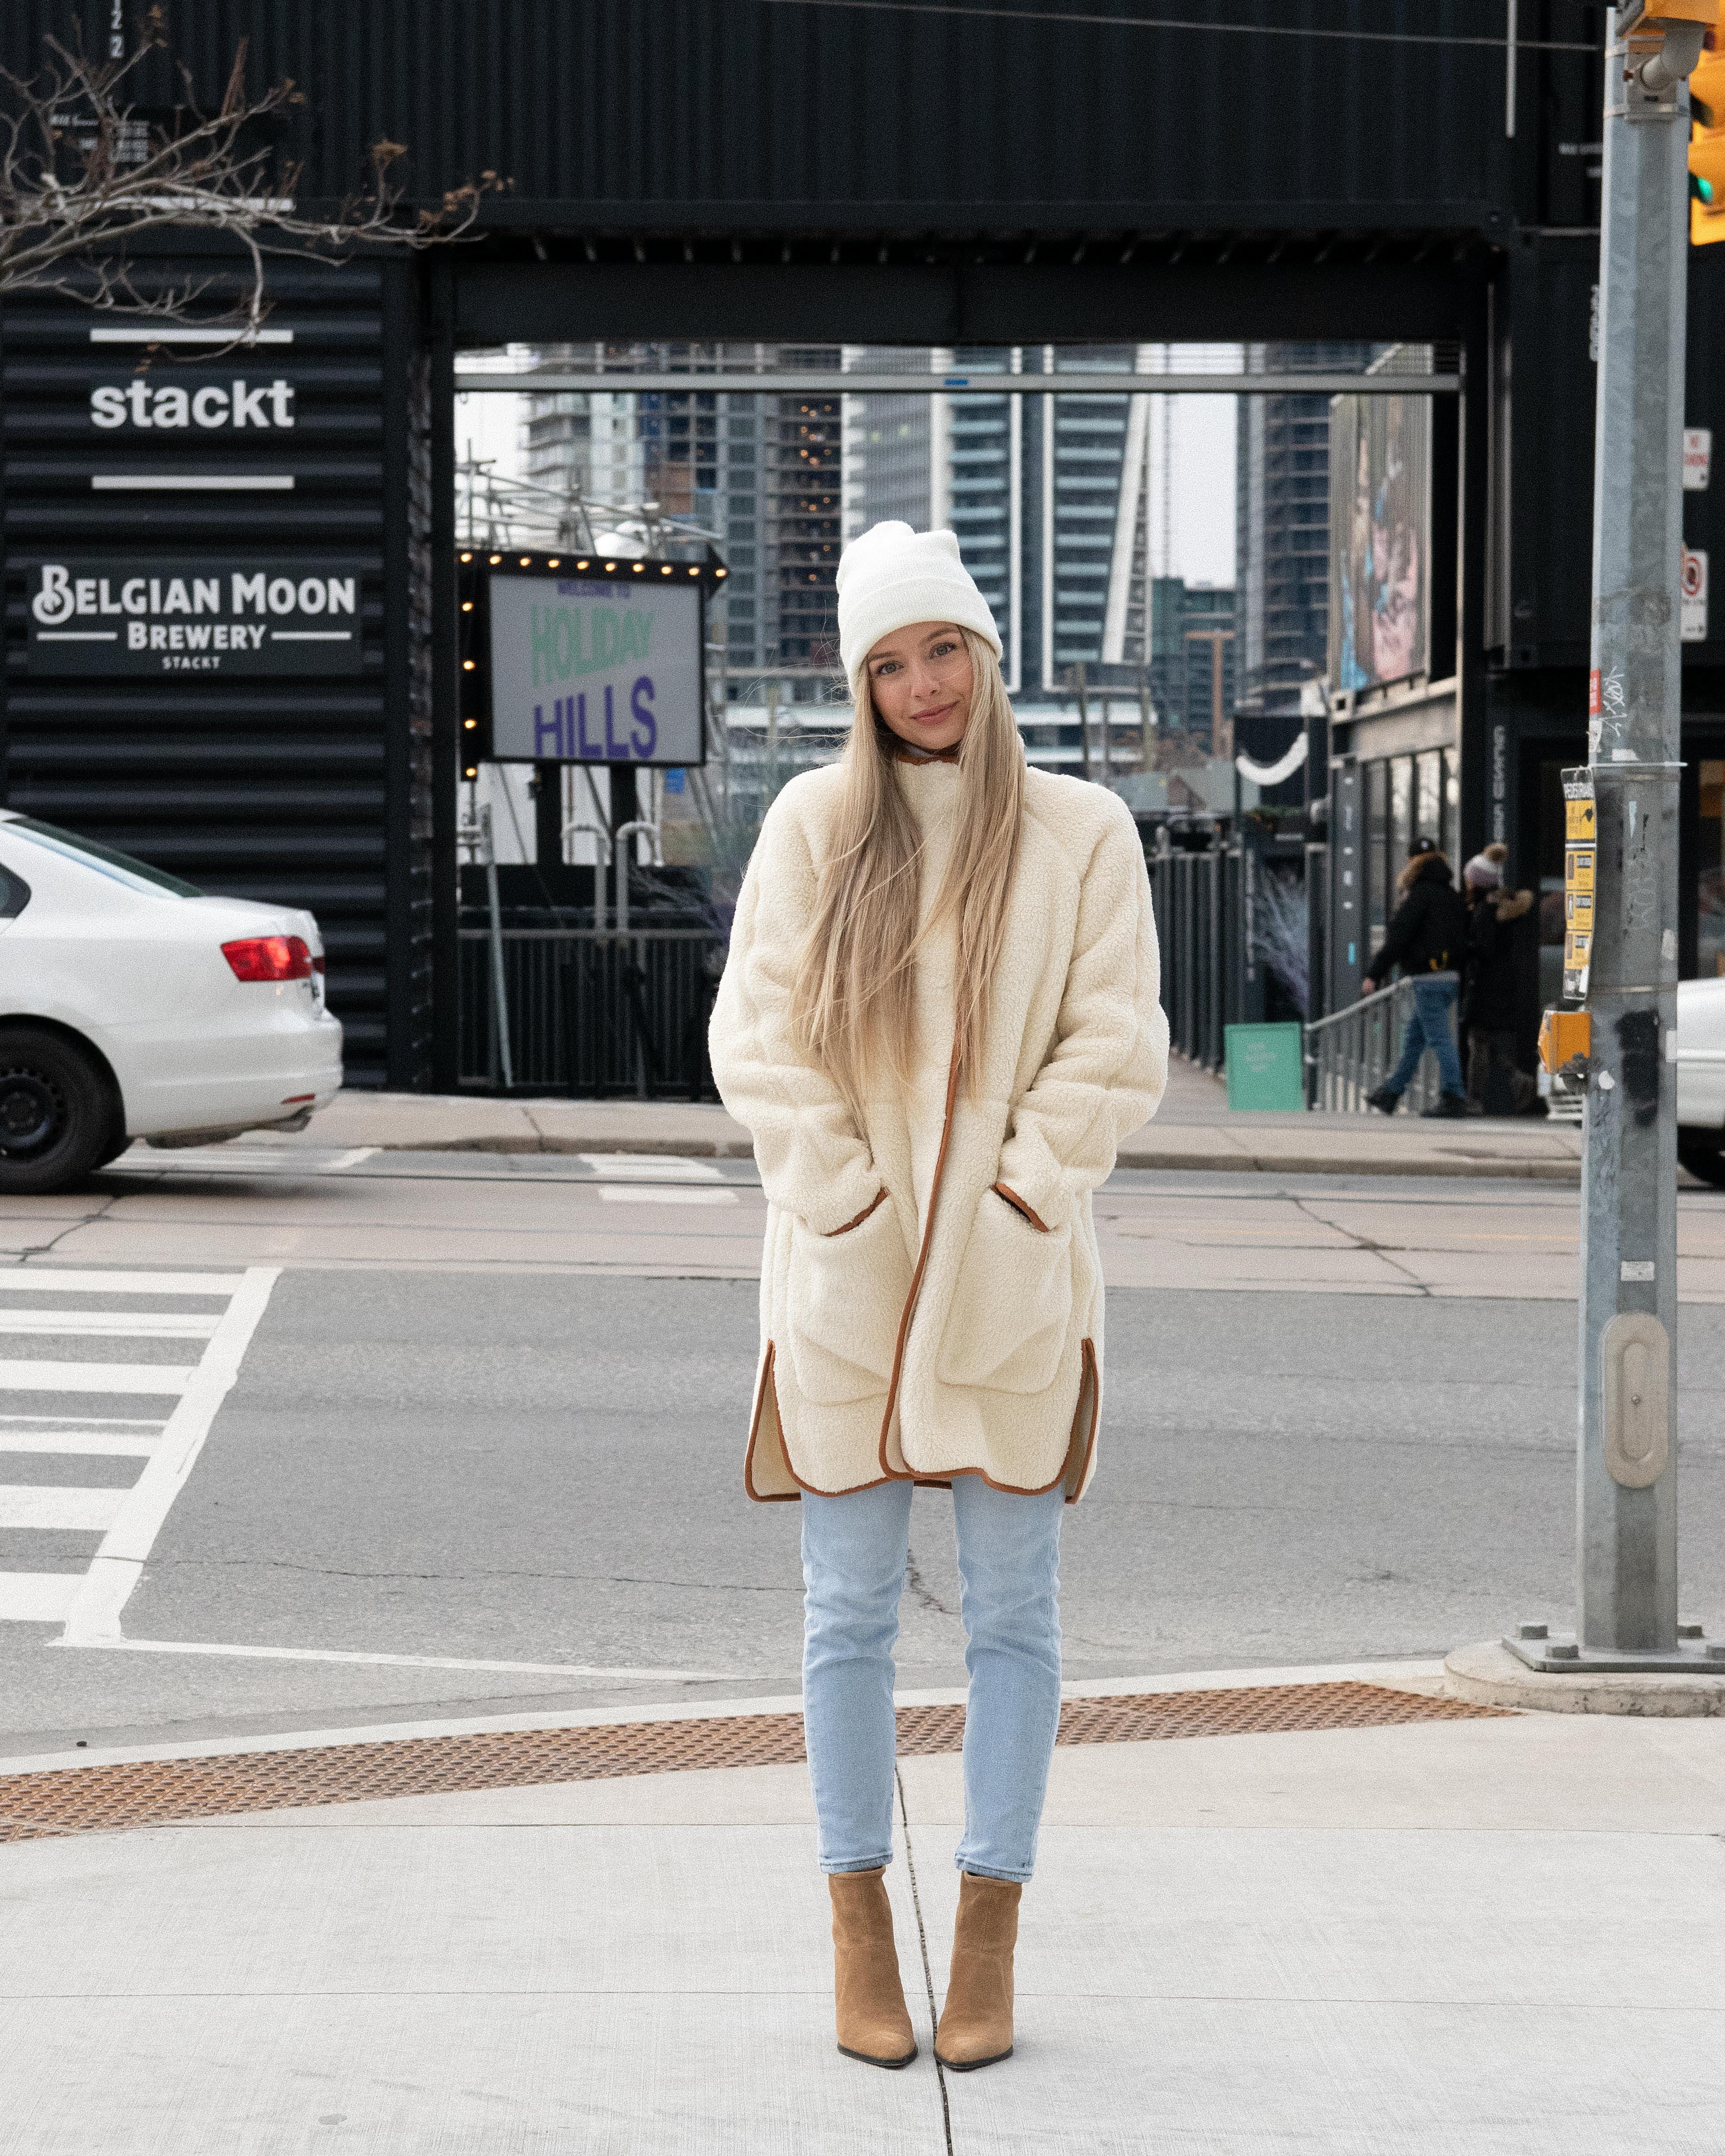 WINTER OUTFIT IDEAS 2020 | www.alexgaboury.com